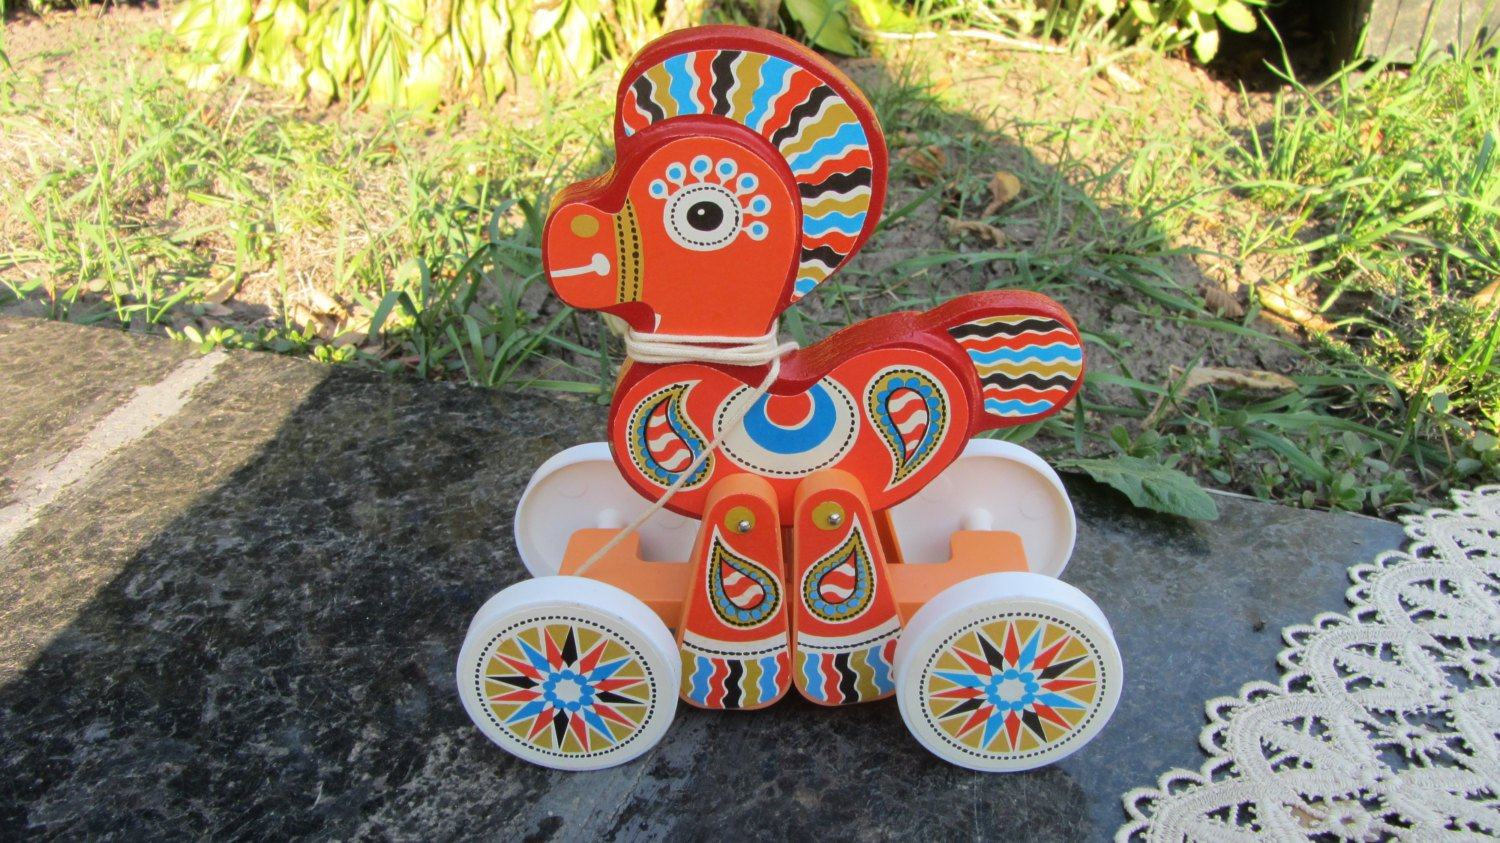 Vintage Great wooden horse pull toy, Wooden/Plastic horse toy, Stickers ornament woden toy, Pull hor